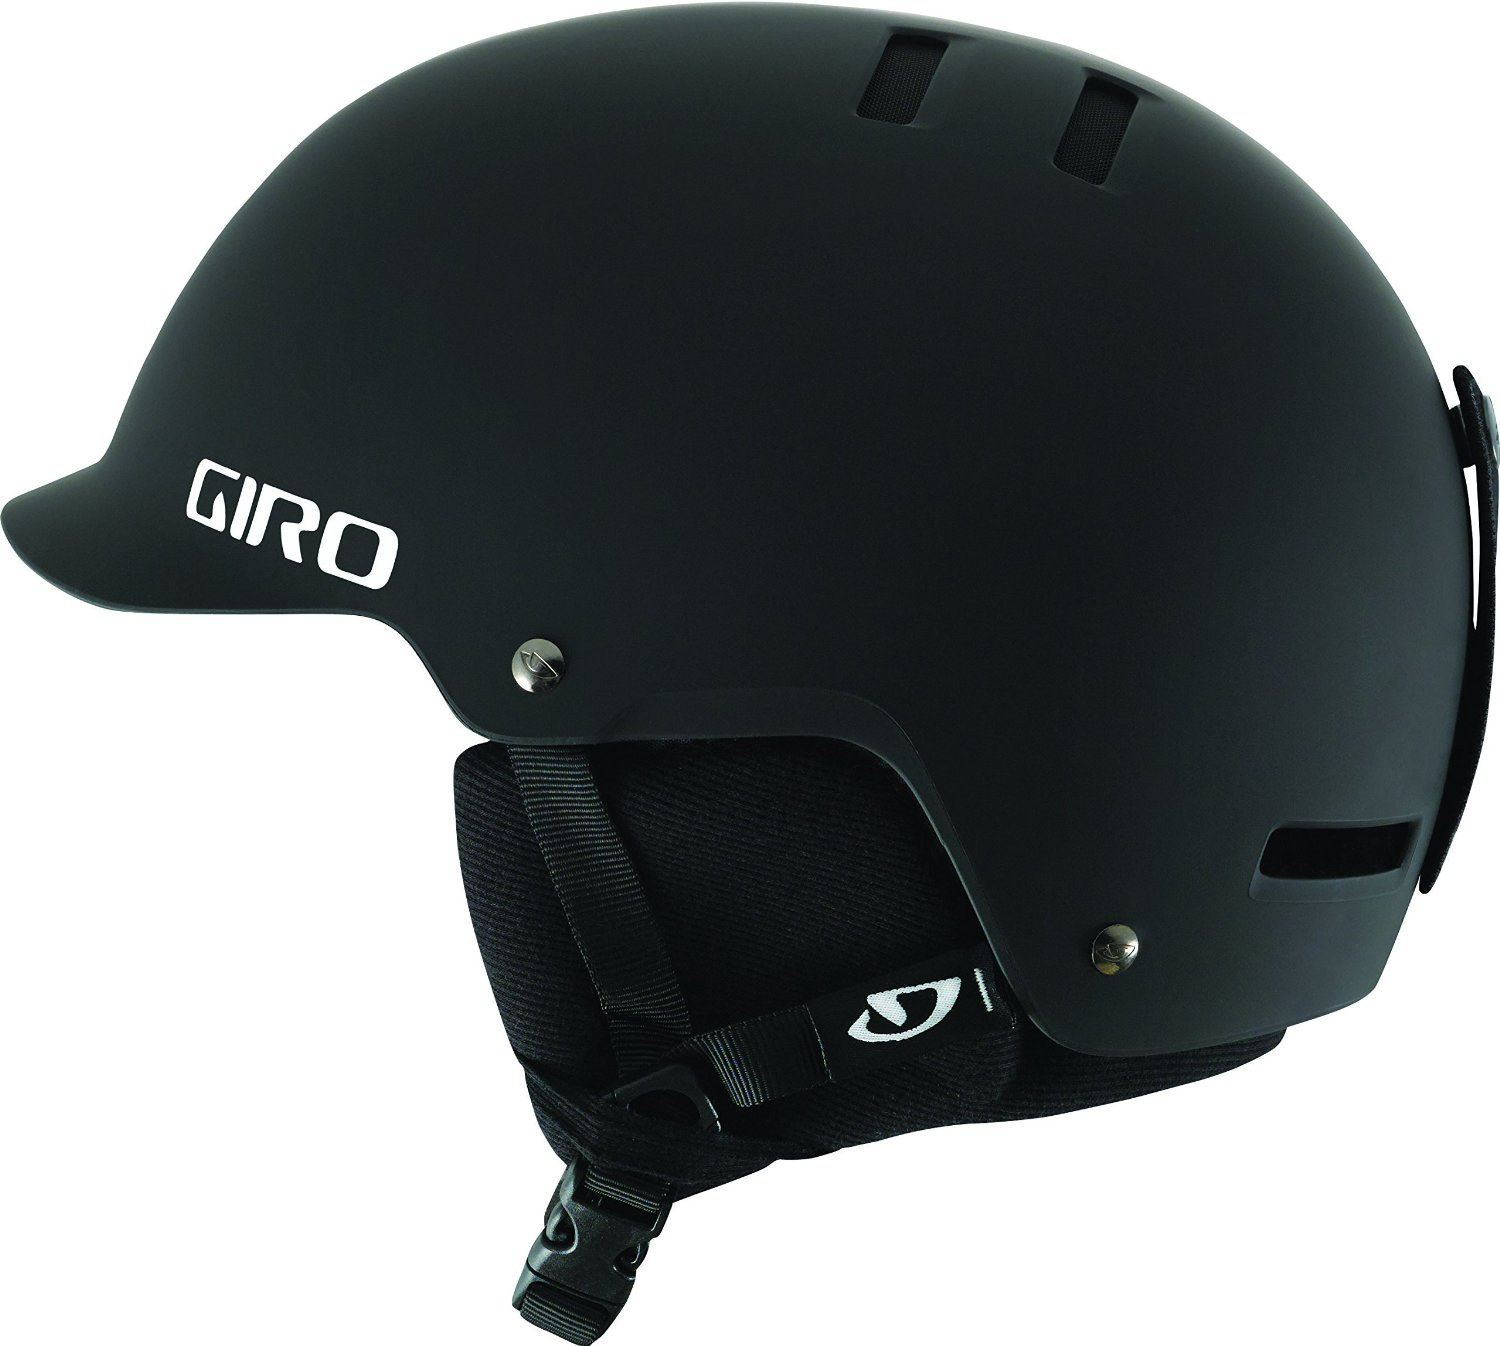 Giro Surface-S Snow Helmet by Giro